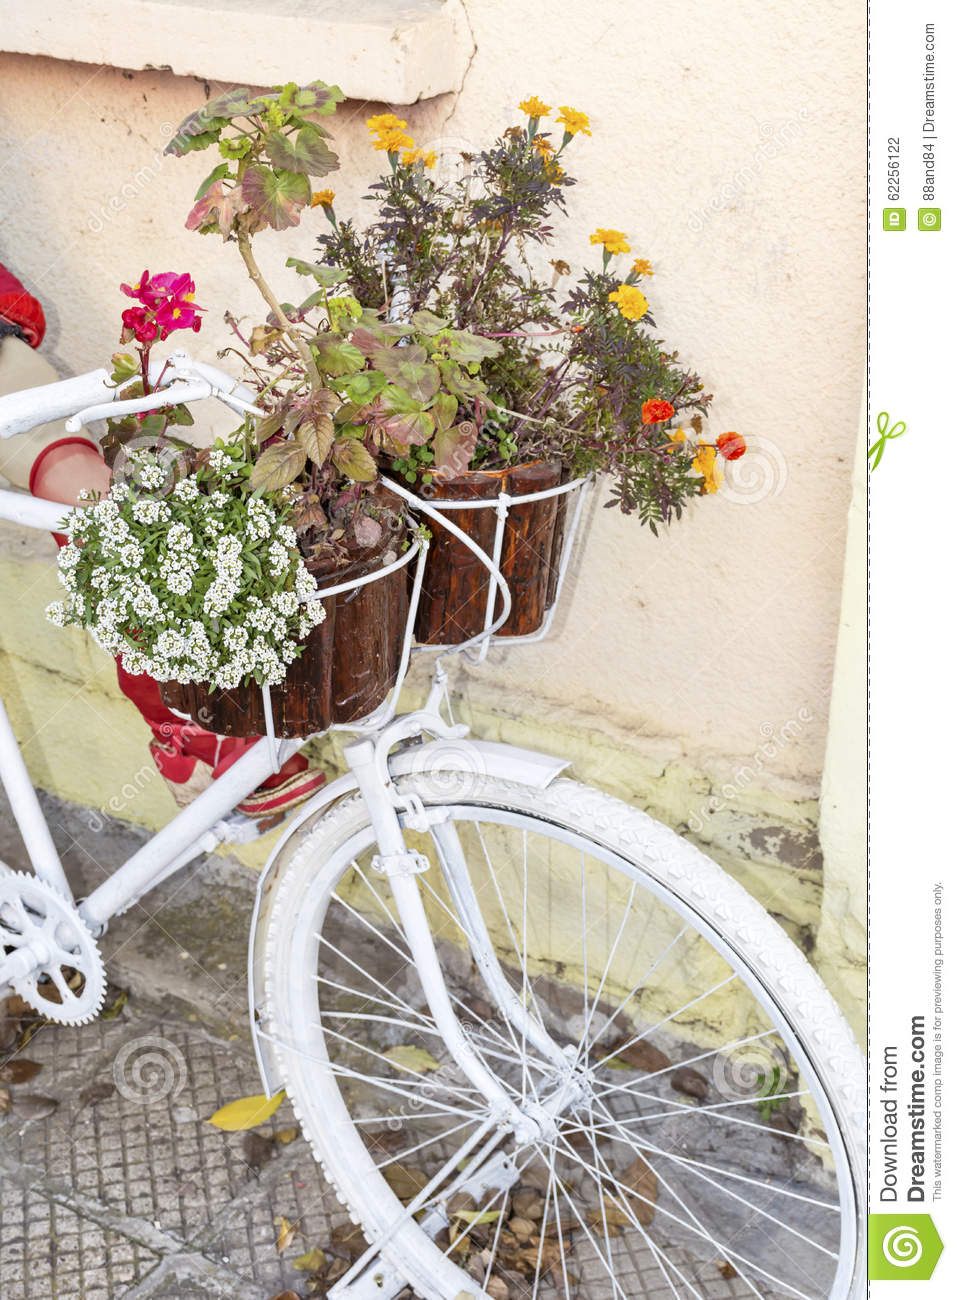 decorative-white-bicycle-flowers-old-front-house-hanging-62256122 Small Retro House Plans on small stylish house plans, small minimalist house plans, small kitchen house plans, small space house plans, small antique house plans, small vacation house plans, small farm style house plans, small medieval house plans, small romantic house plans, small handicap house plans, small historic house plans, small neoclassical house plans, small one story house plans, small house house plans, small hillside house plans, small family house plans, small urban house plans, small pretty house plans, small japanese style house plans,